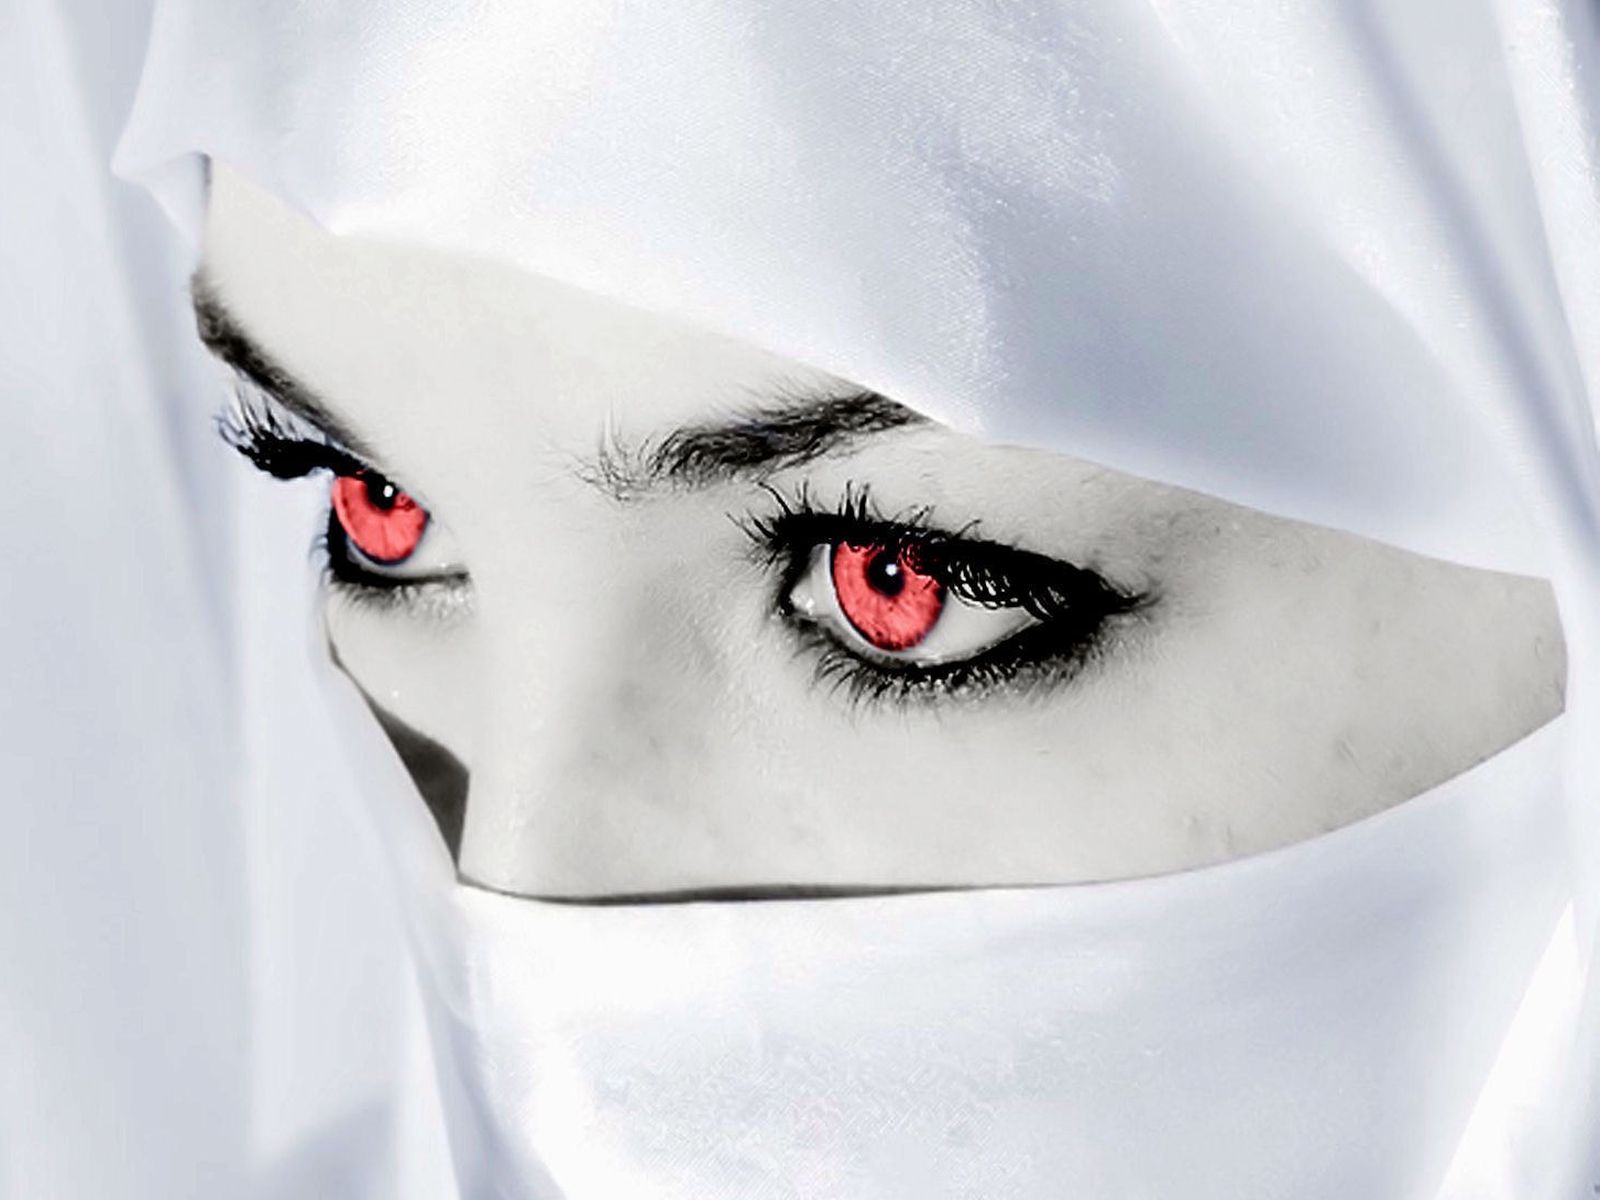 Download High quality red eyes veiled woman Eyes Wallpaper Num 8 1600x1200